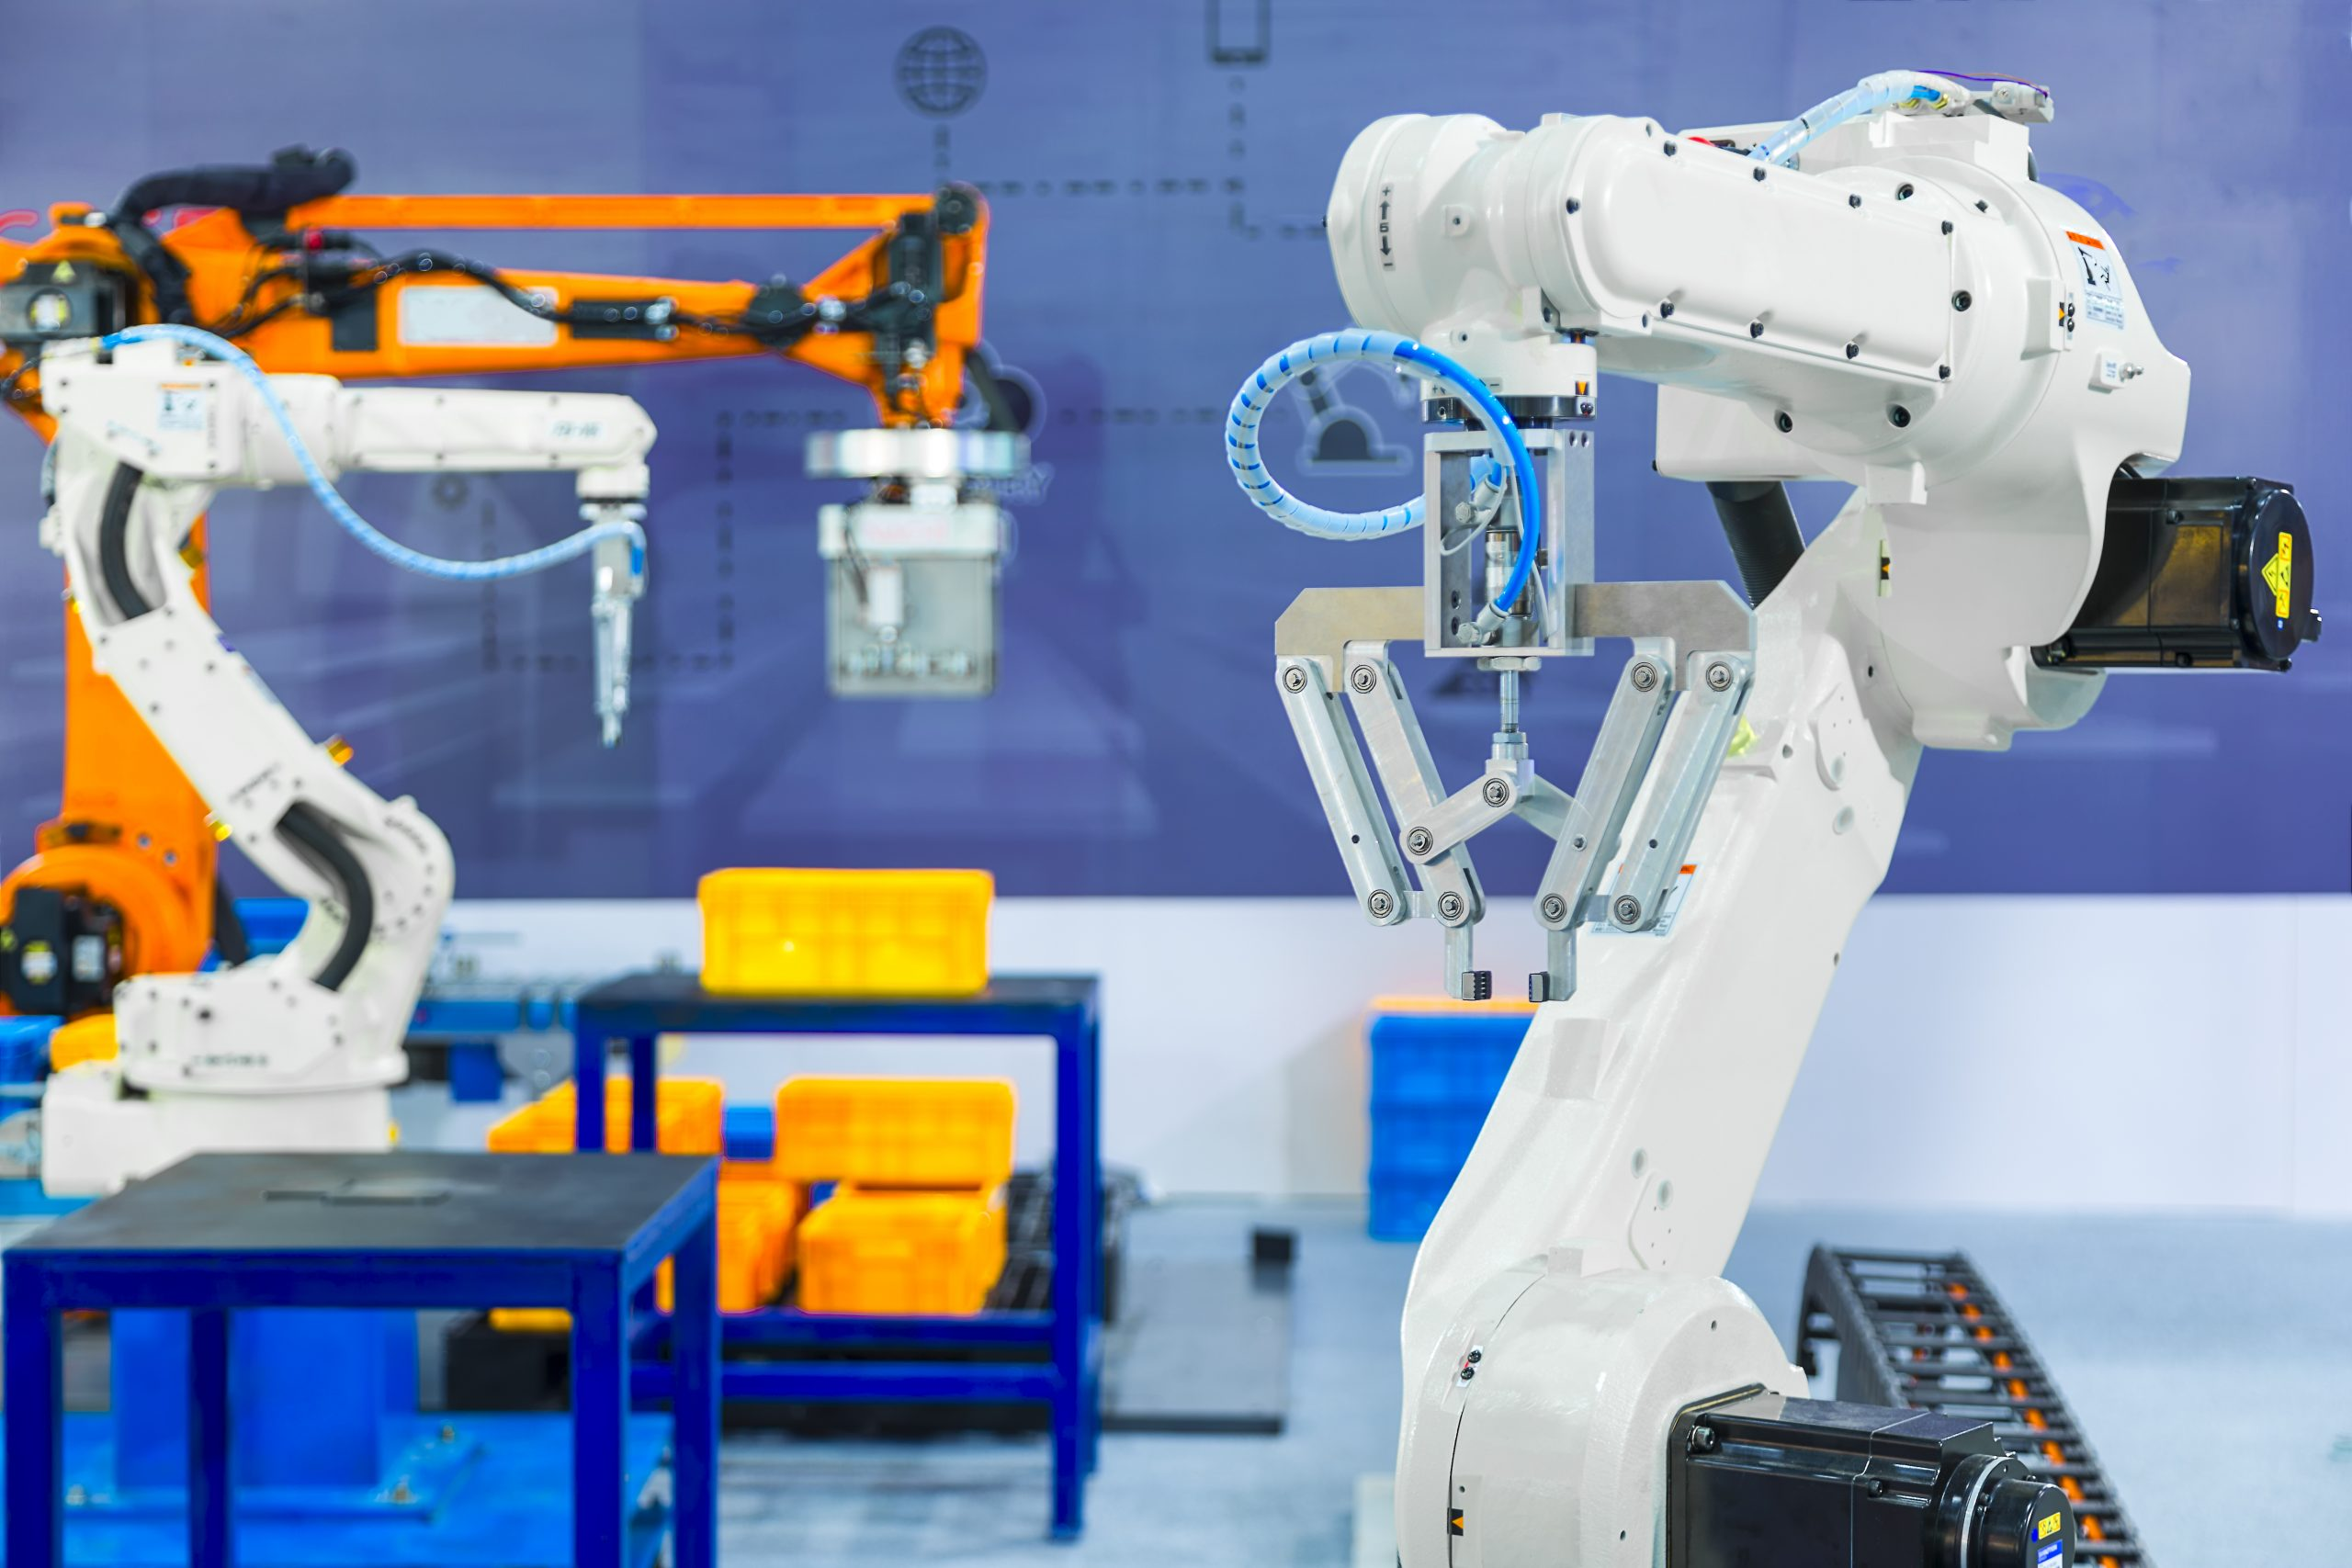 A Short Overview of Industrial Robots